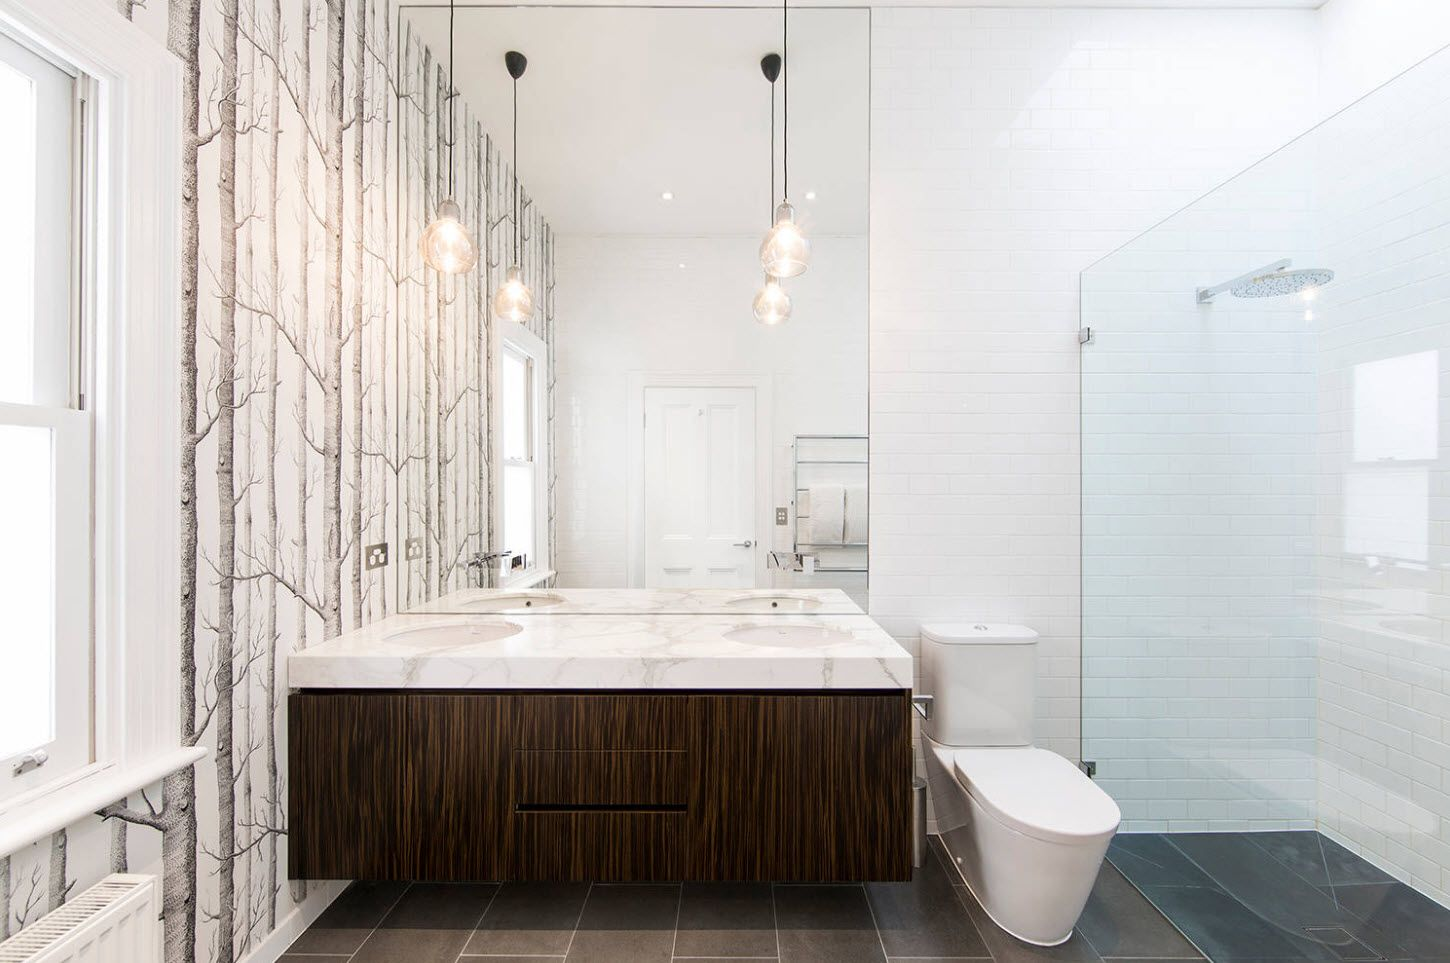 Modern bathroom design with suspended wooden vanity and naturalistic wallpaper design